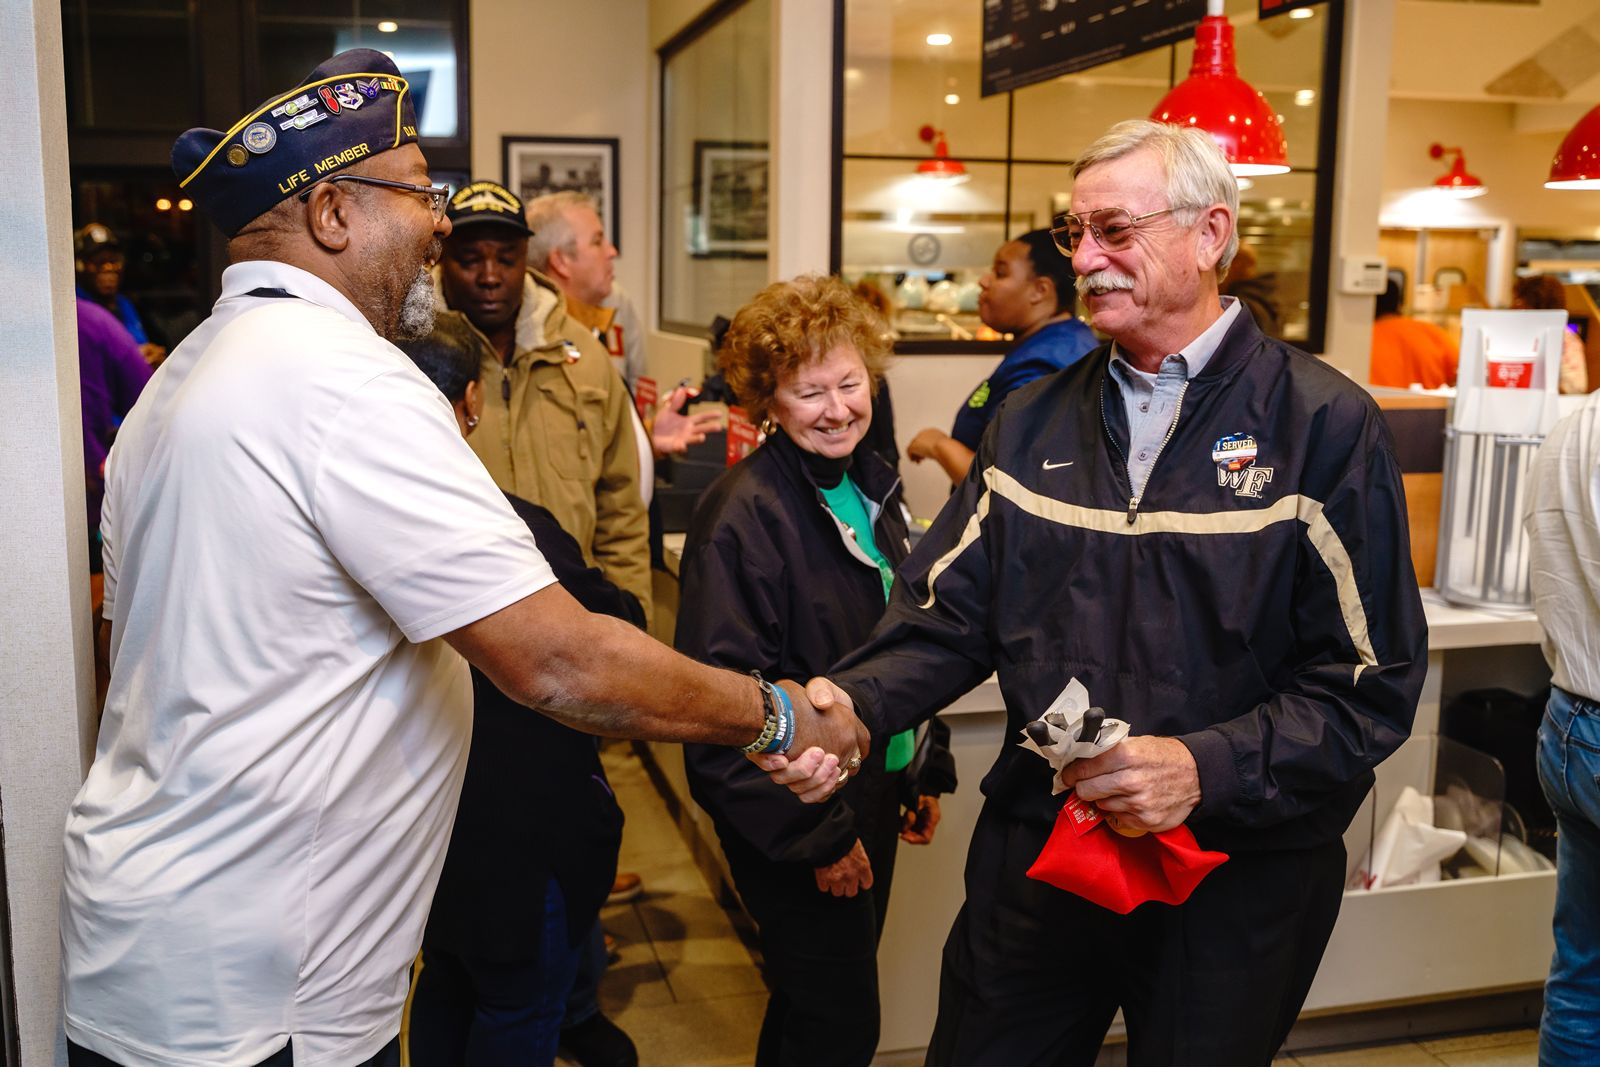 Golden Corral Raised More Than $1 Million for Disabled American Veterans